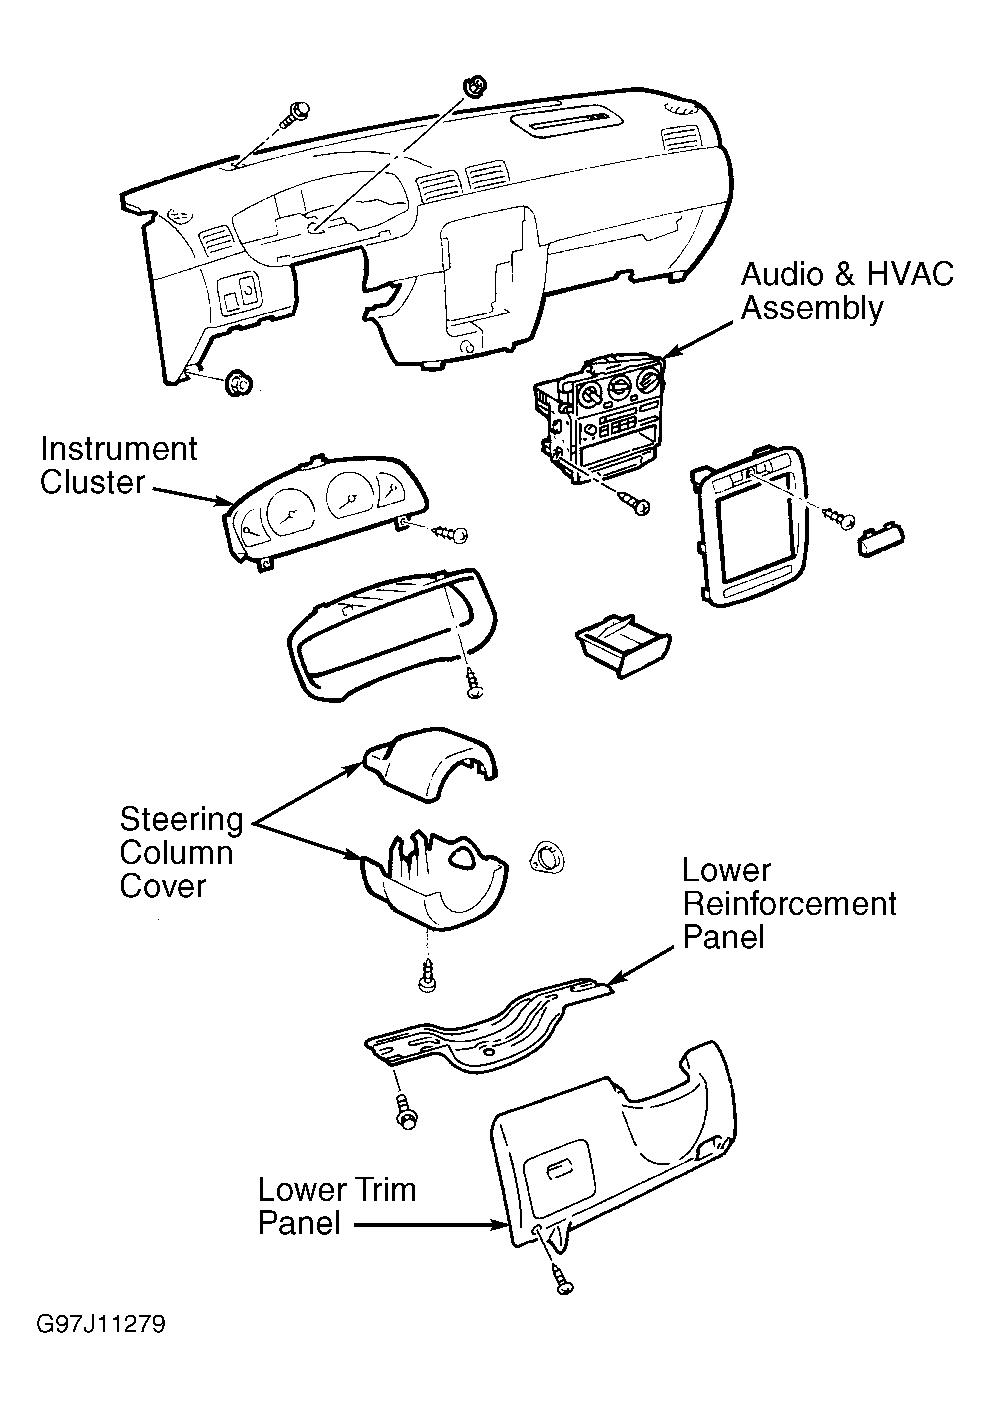 service manual  2001 nissan sentra dash removal diagram